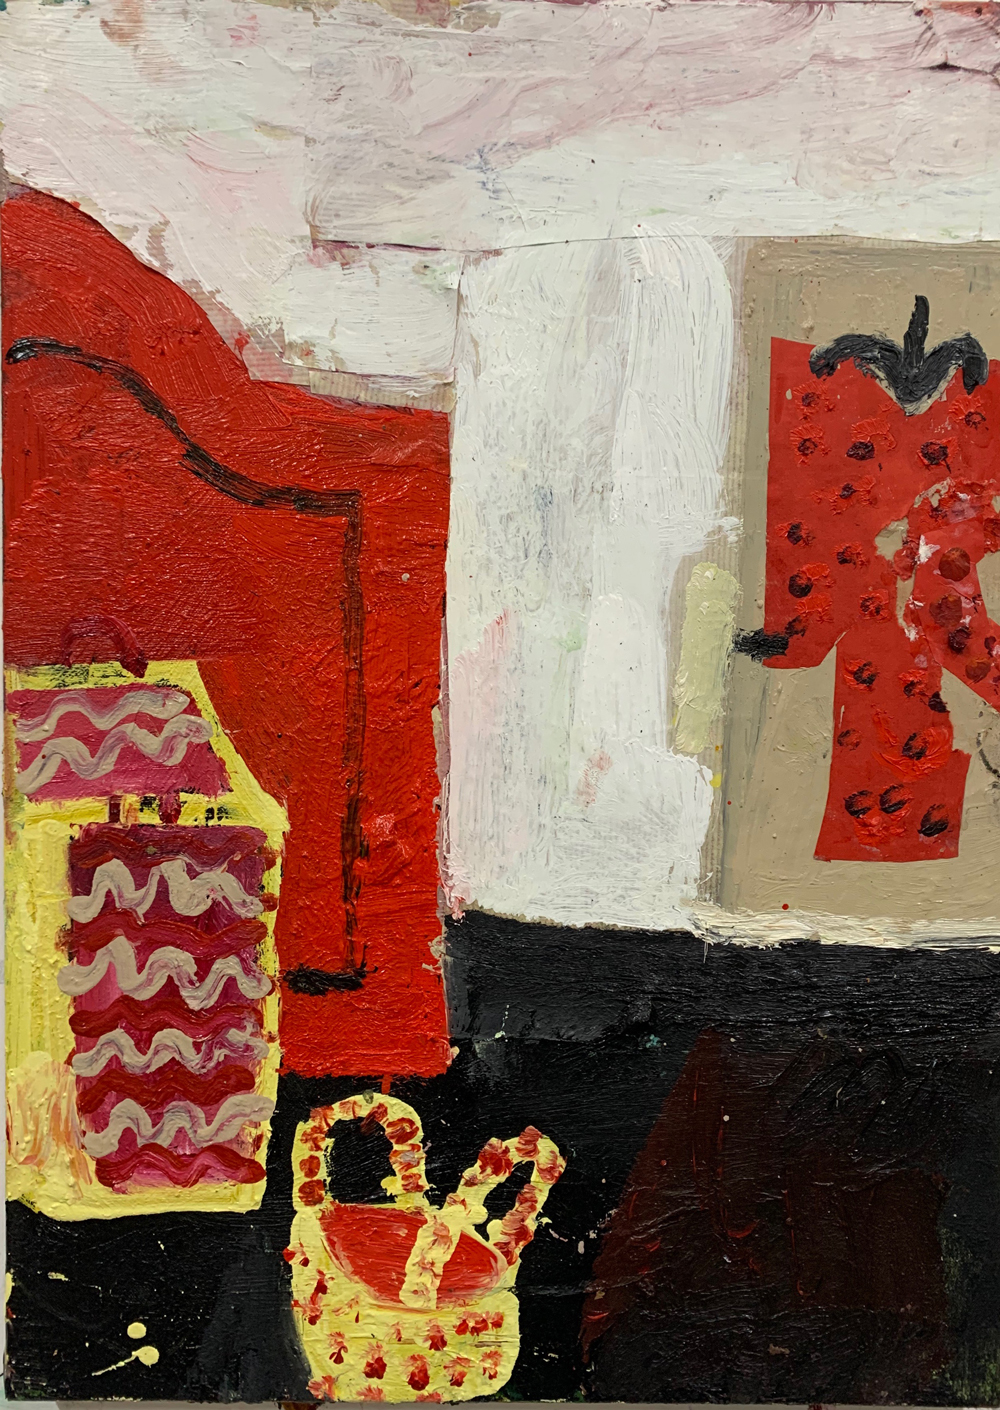 Florence-Hutchings.-The-White-Wallpaper,-2020-oil-paint-and-collage-on-canvas-56x41cm